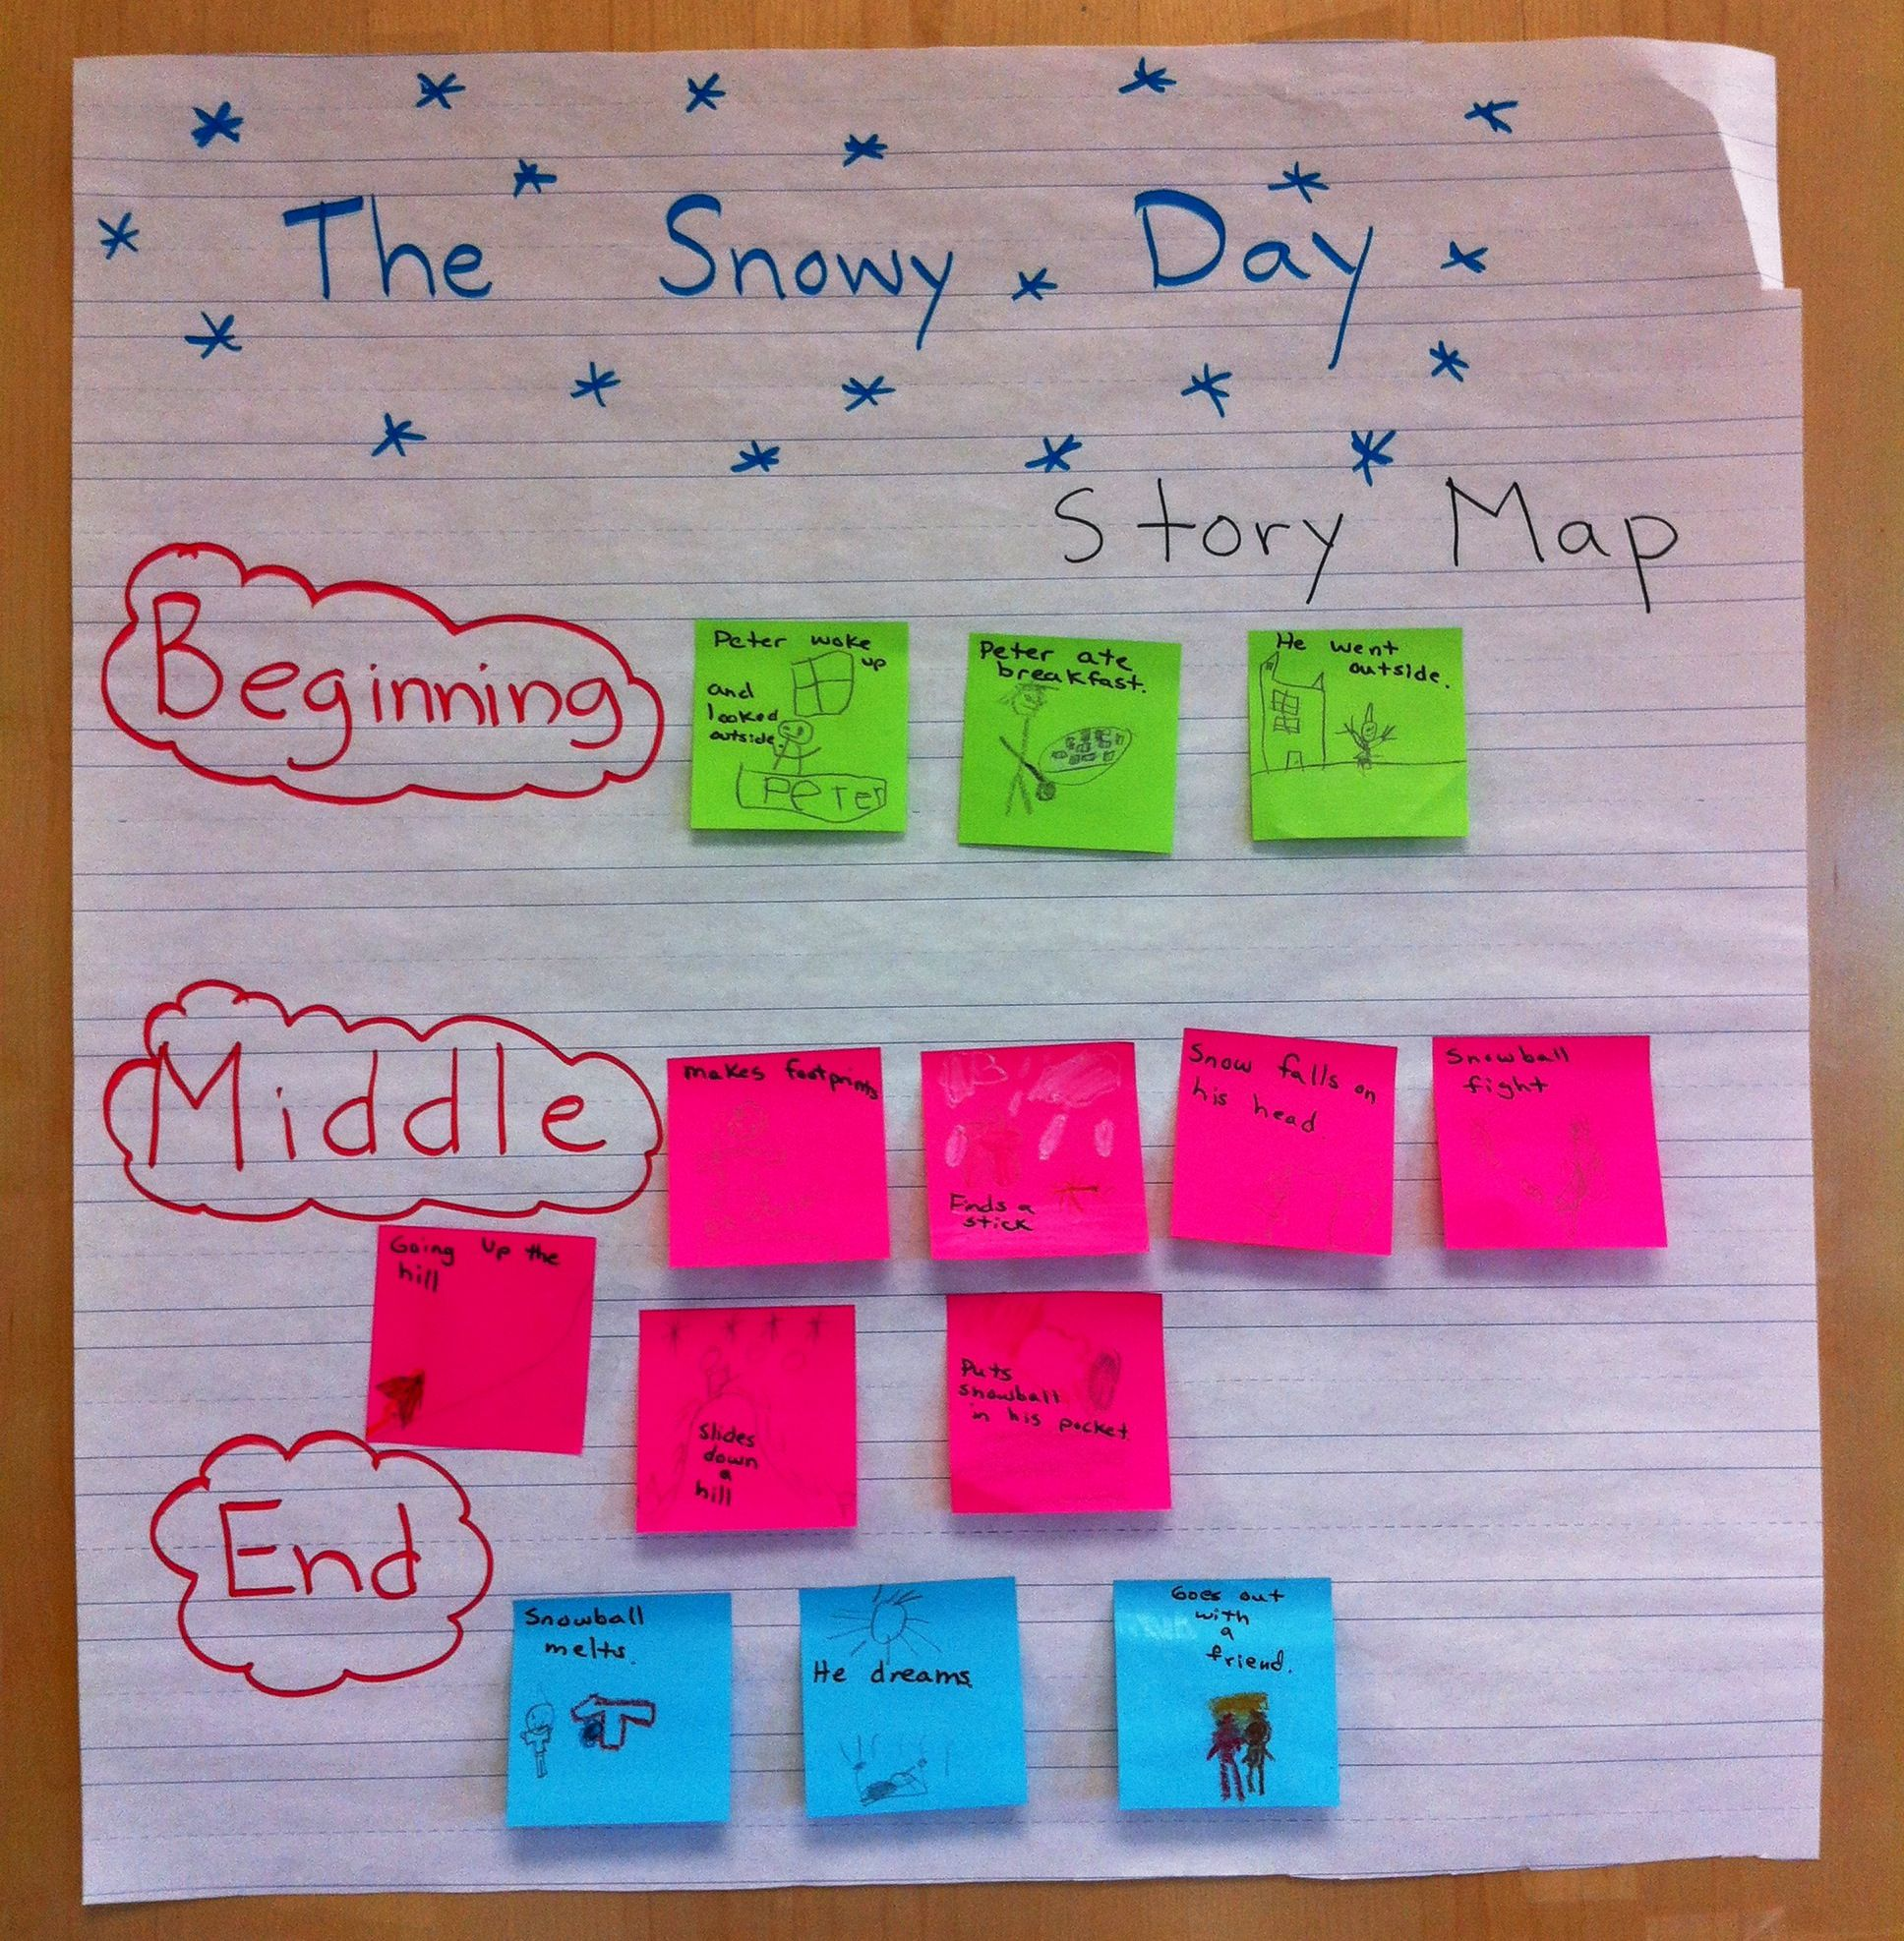 The Snowy Day Story Map